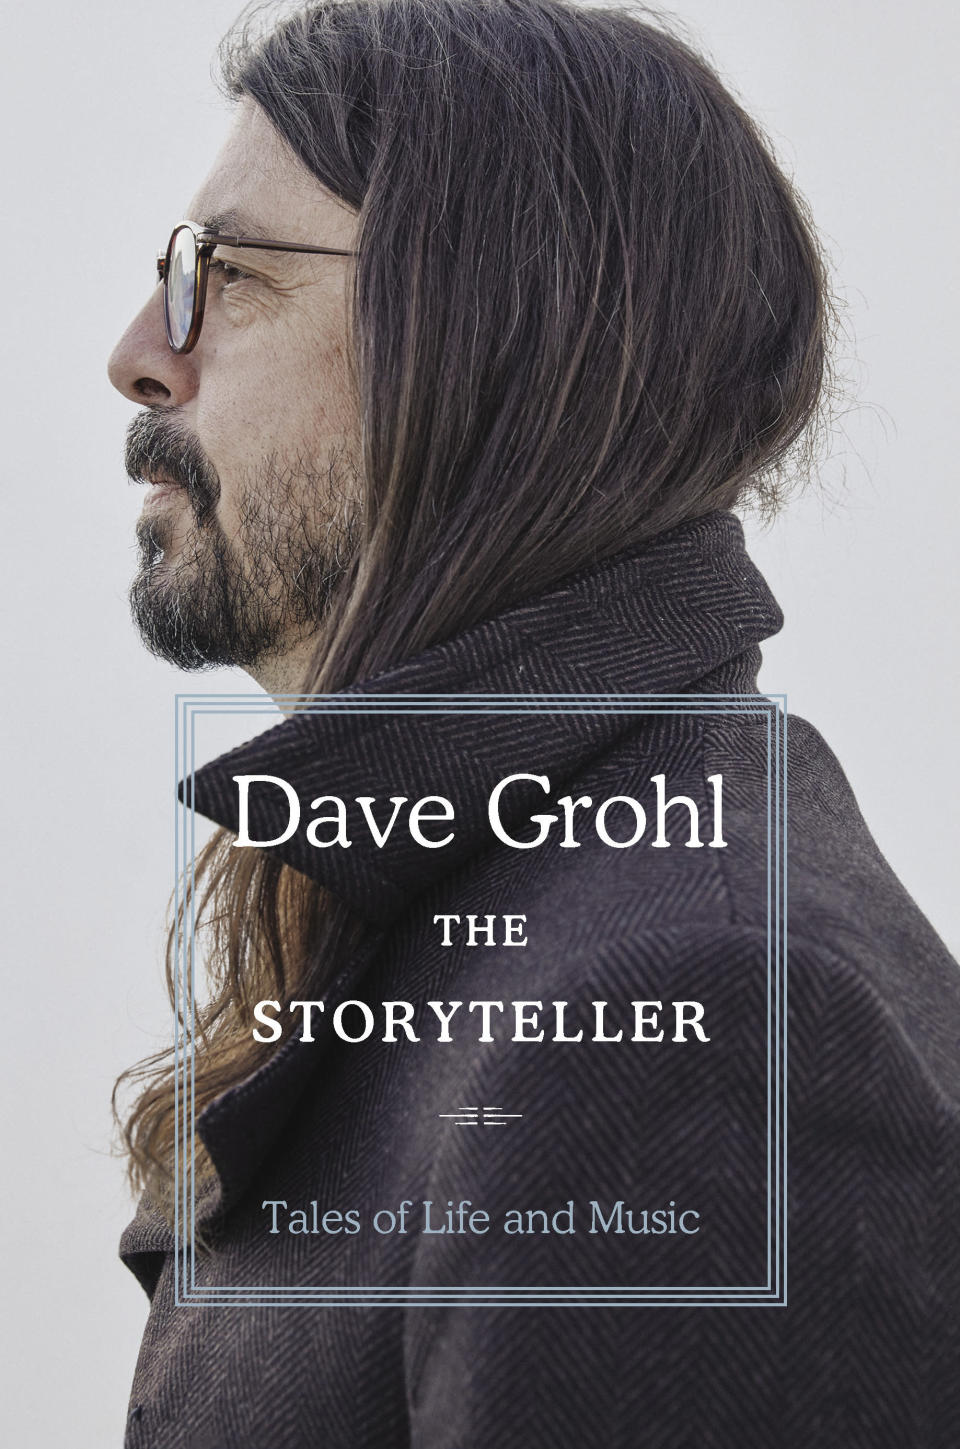 """This cover image released by Dey Street Books shows """"The Storyteller: Tales of Life and Music"""" by Dave Grohl, releasing Oct. 5. (Dey Street Books via AP)"""